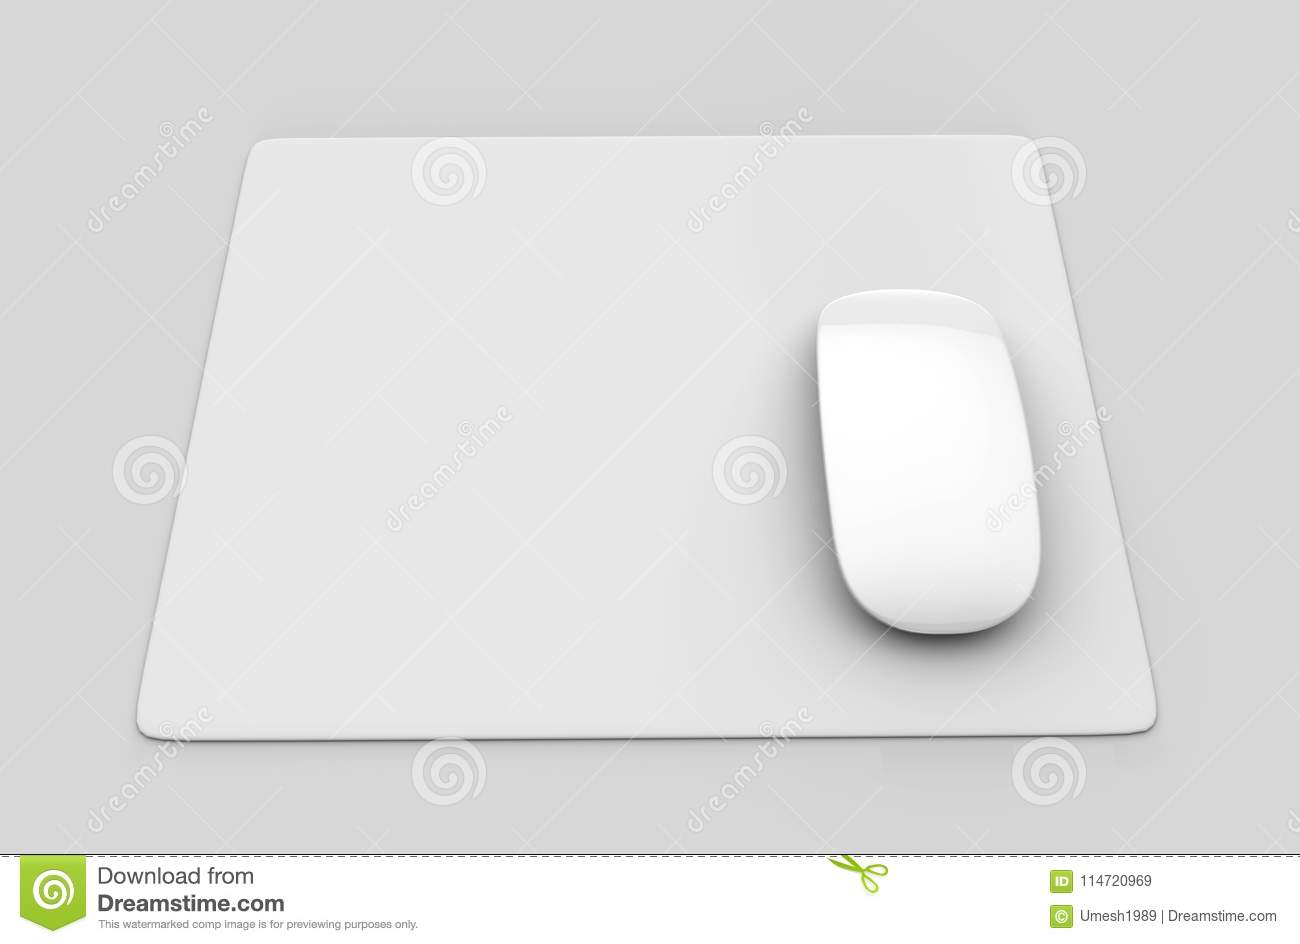 Circular Blank Mouse Pad With Computer Mouse For Branding